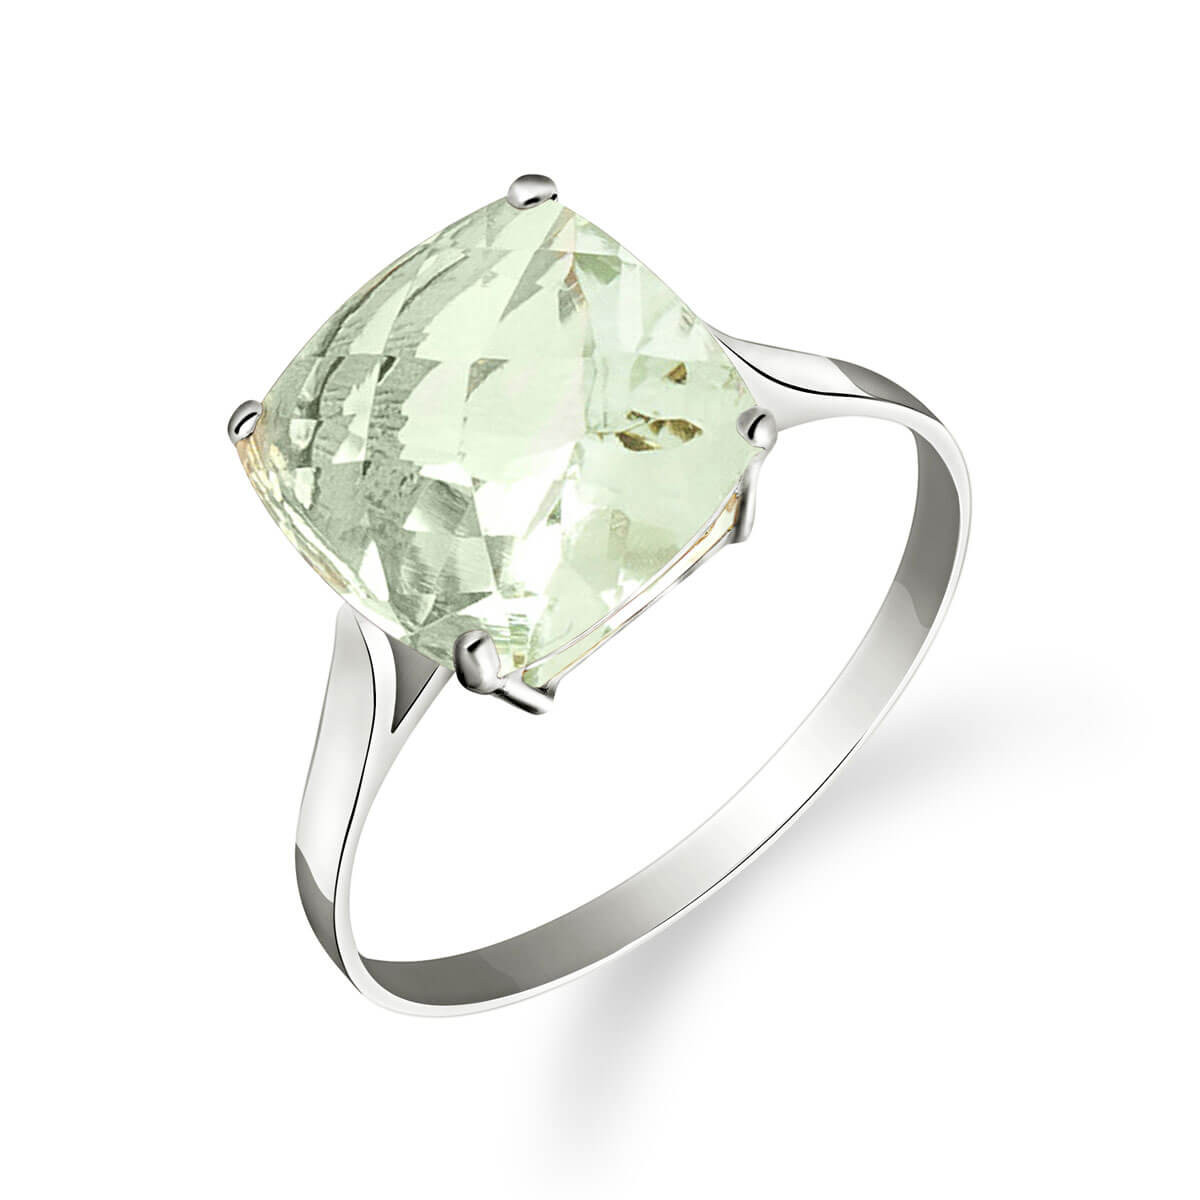 Green Amethyst Rococo Ring 3.6 ct in 9ct White Gold